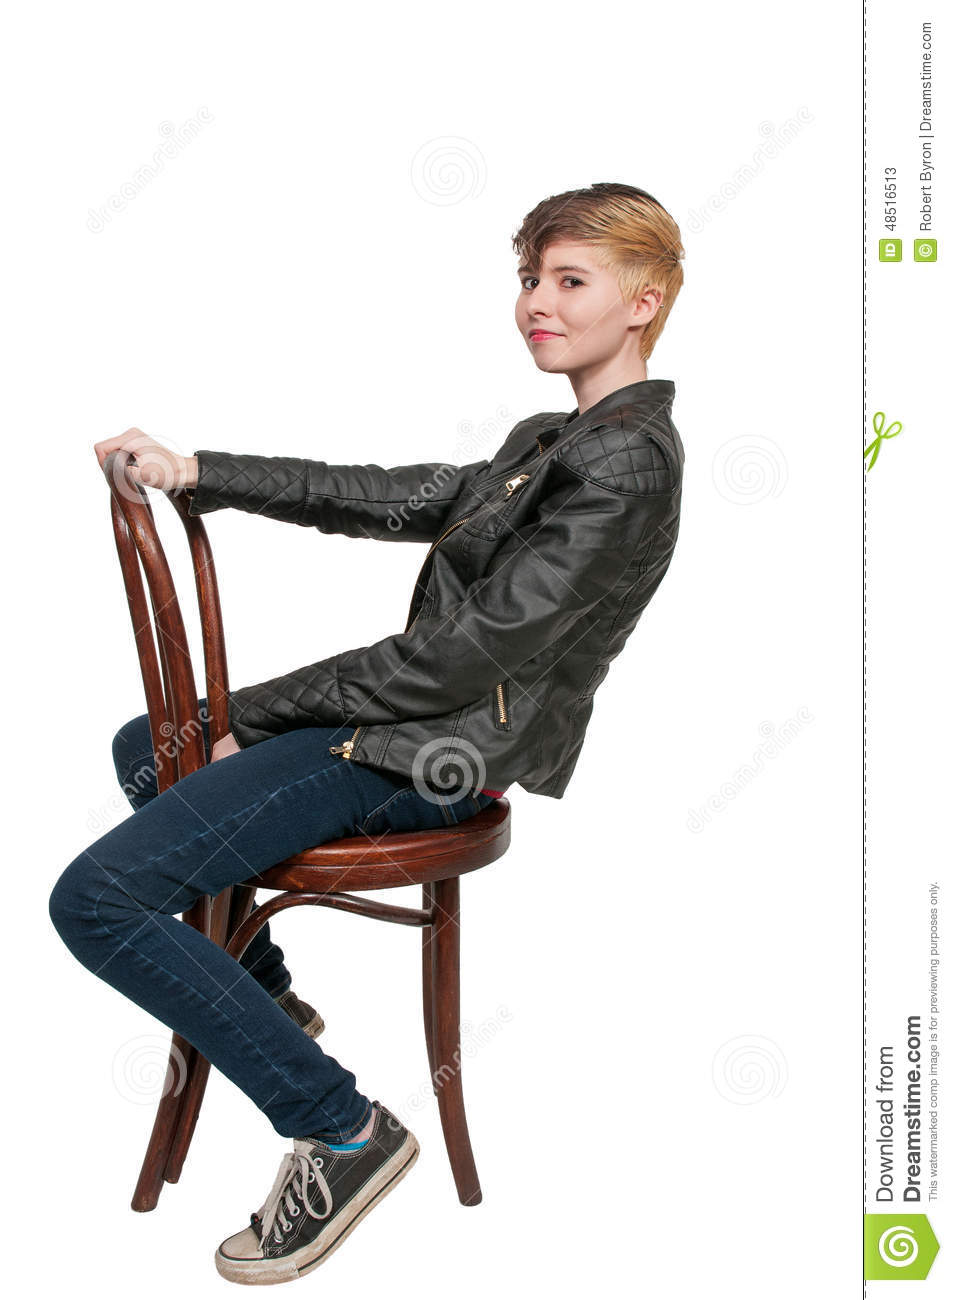 Woman Sitting In A Chair Stock Photo Image 48516513 : woman sitting chair cane back 48516513 from dreamstime.com size 953 x 1300 jpeg 94kB